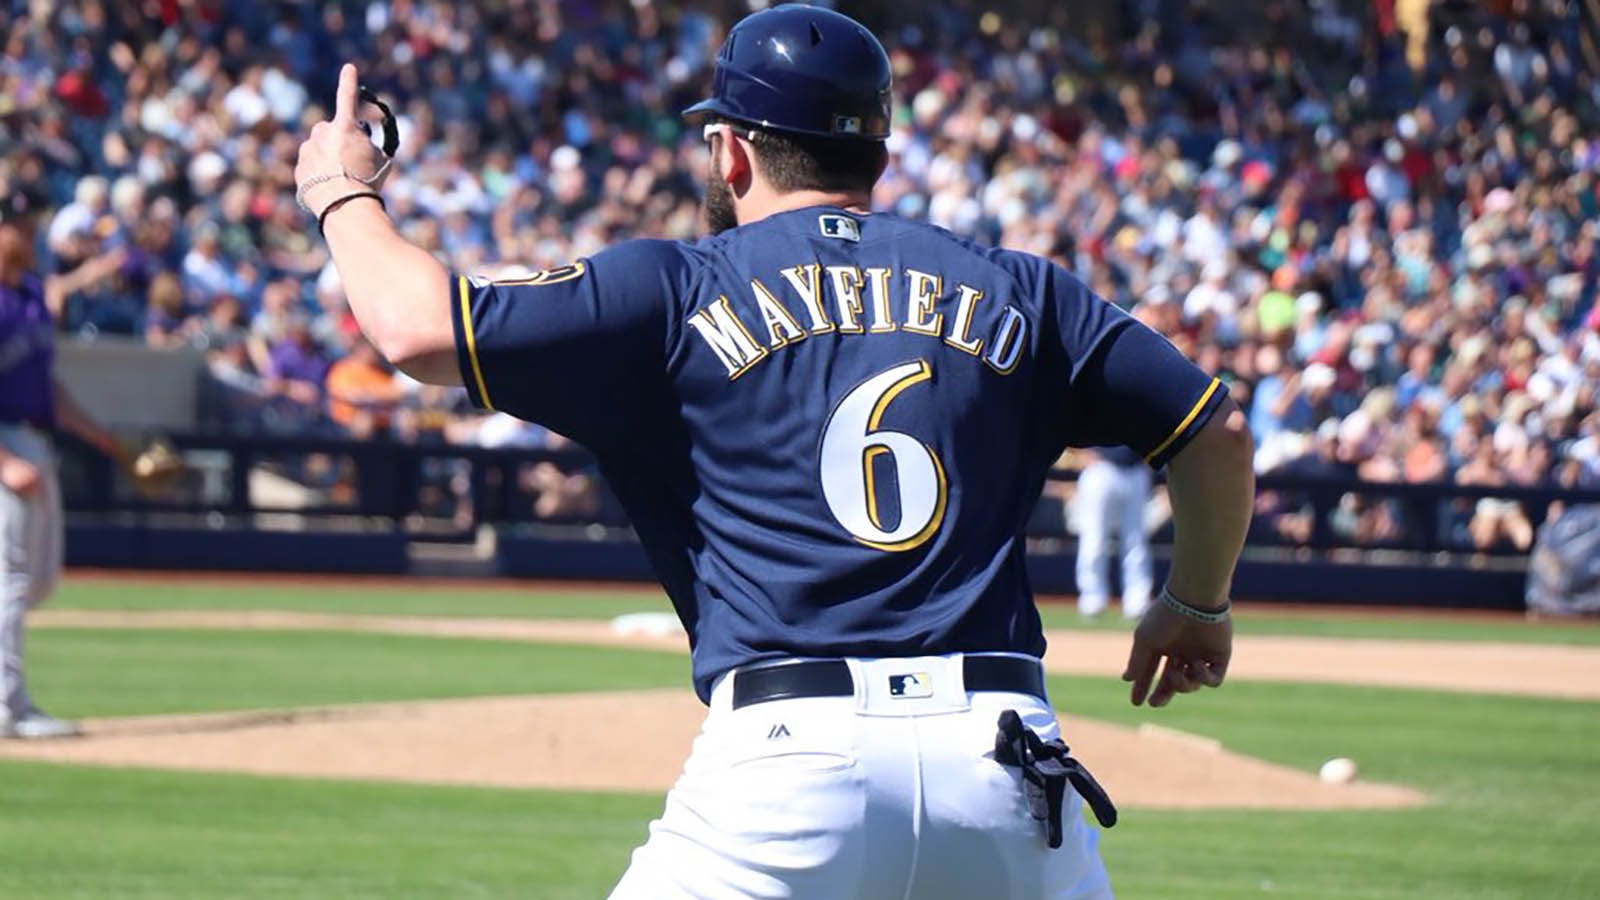 Who s on first  Browns QB Mayfield takes turn as Brewers 1B coach ... 889dc2cc3